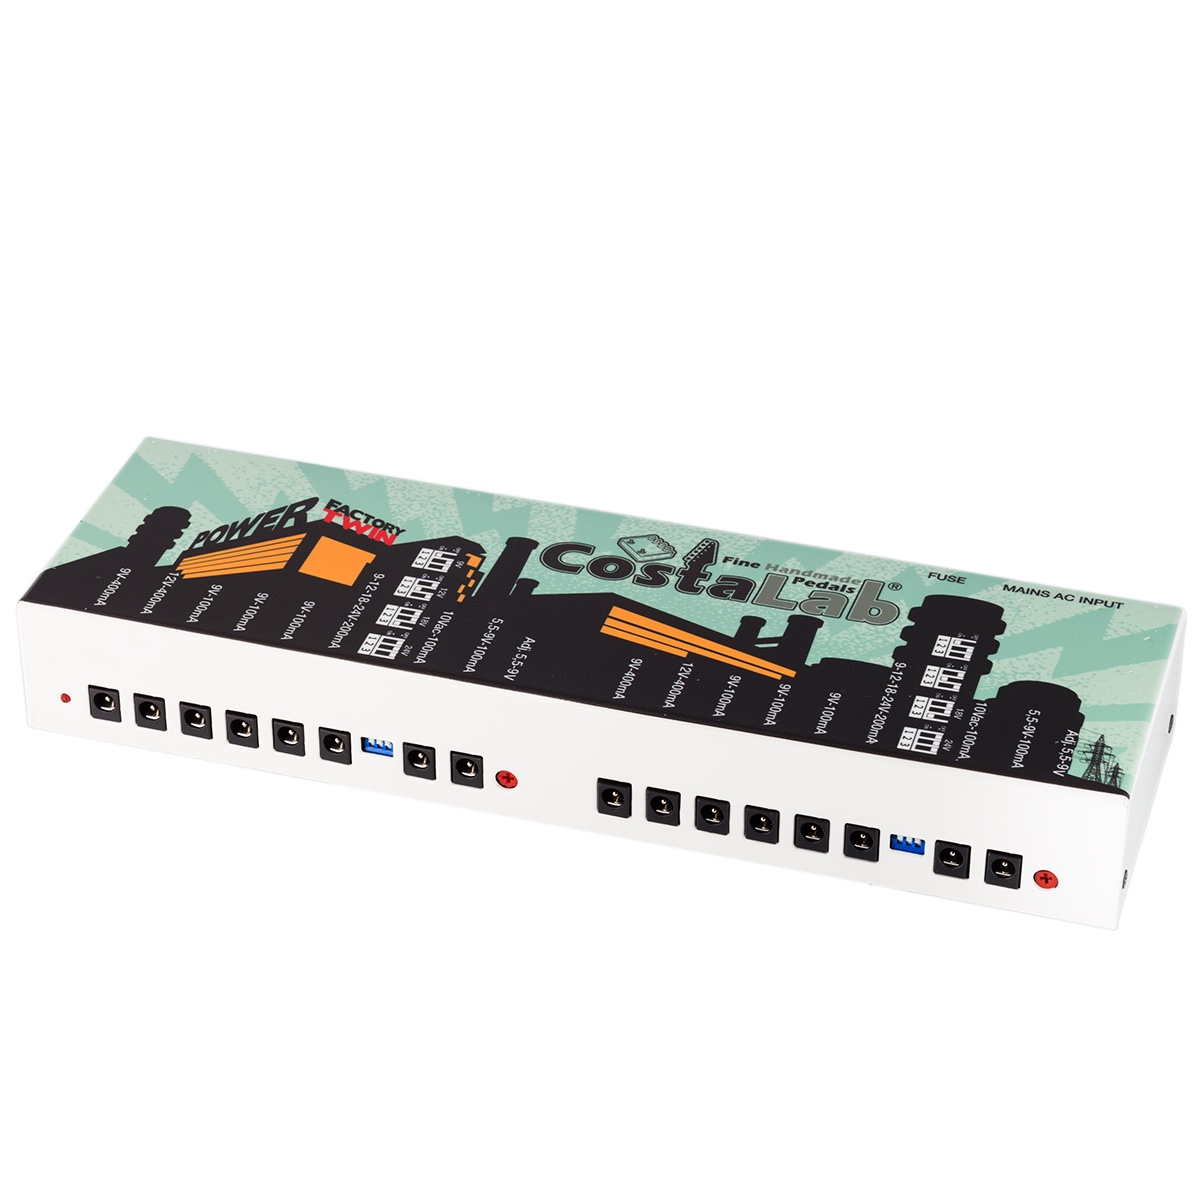 Power Factory Twin Costalab Fuse Box Video Tube